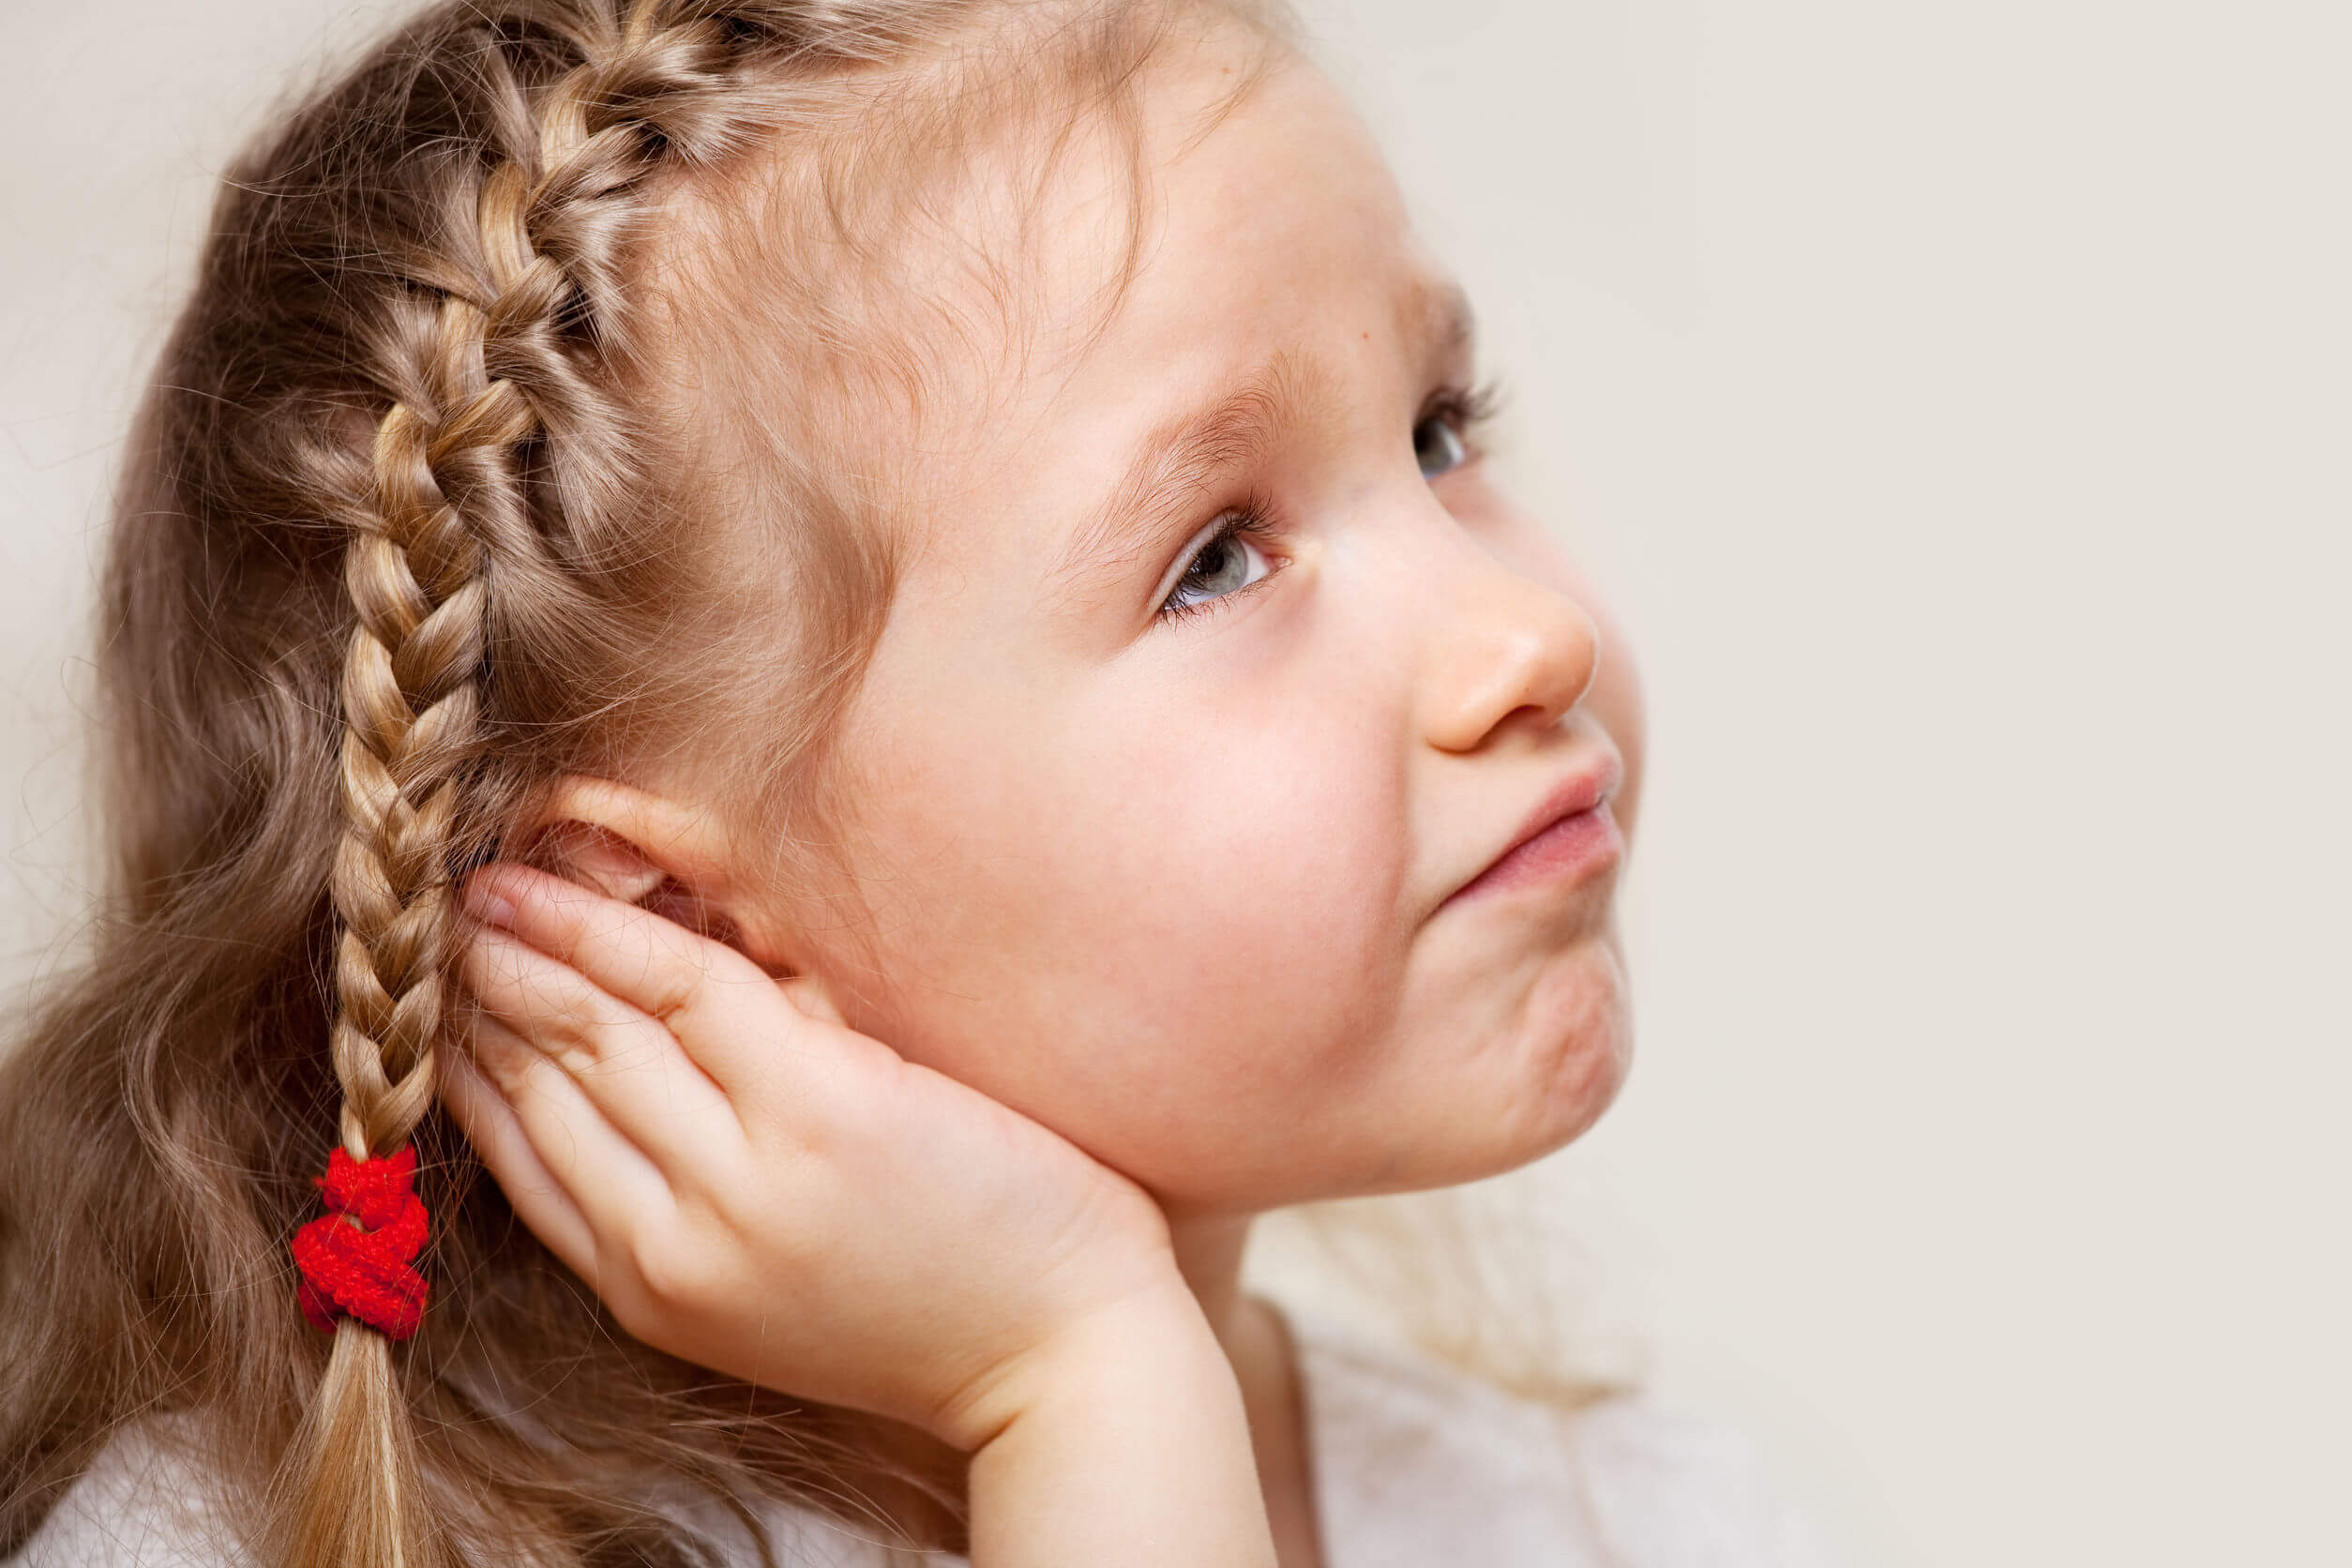 Otitis is one of the most common ear diseases.